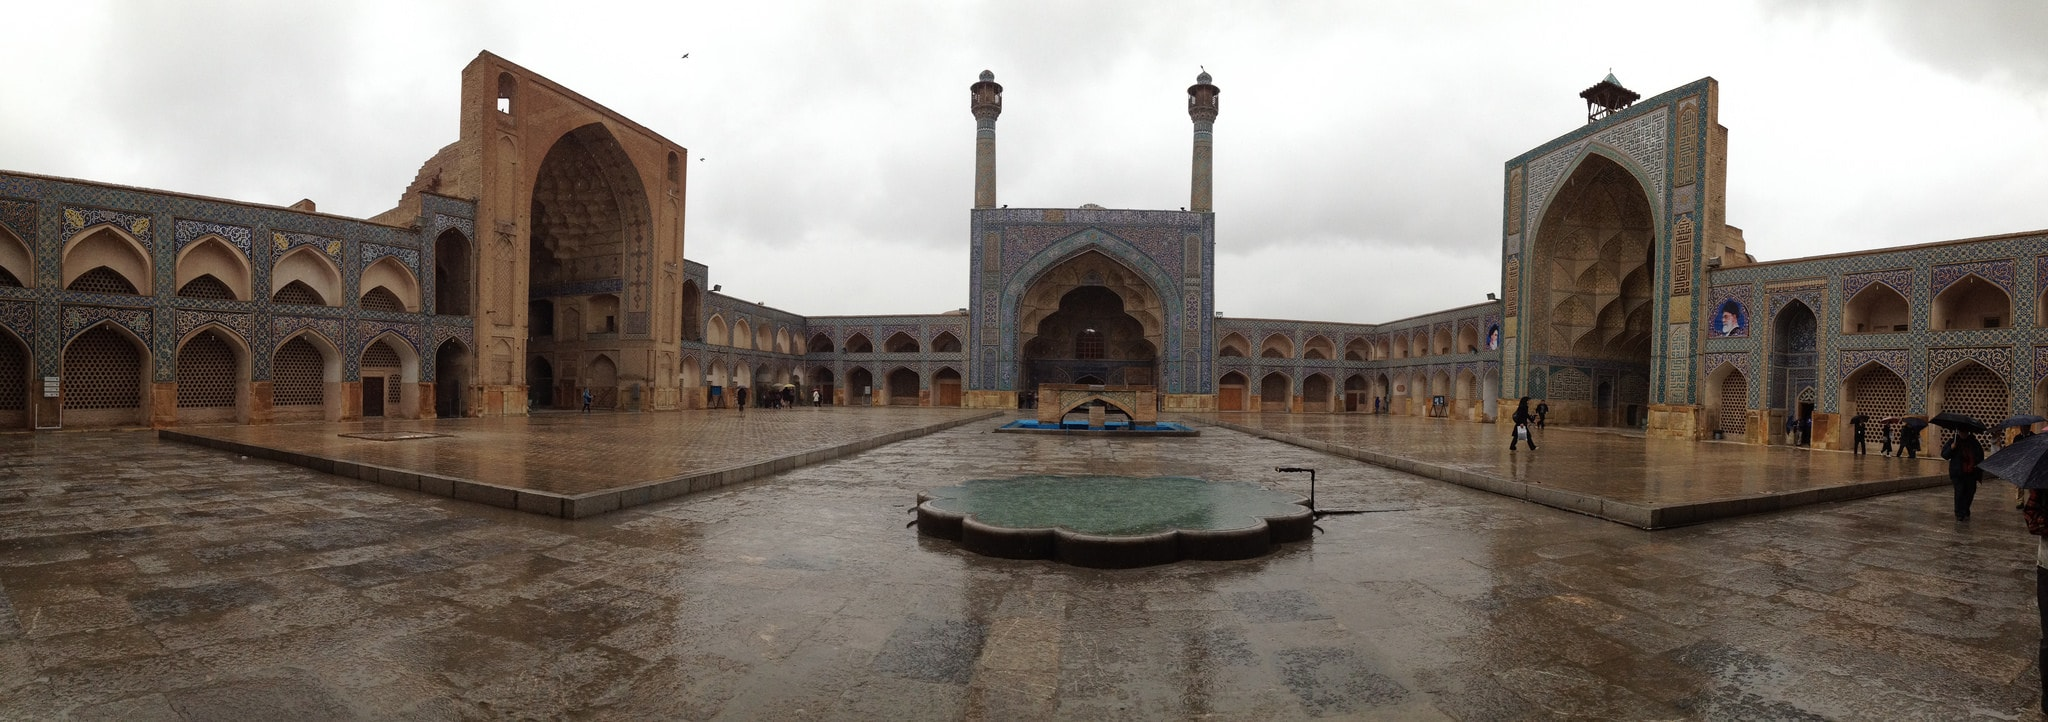 THE ANCIENT JAMEH MOSQUE OF ESFAHAN